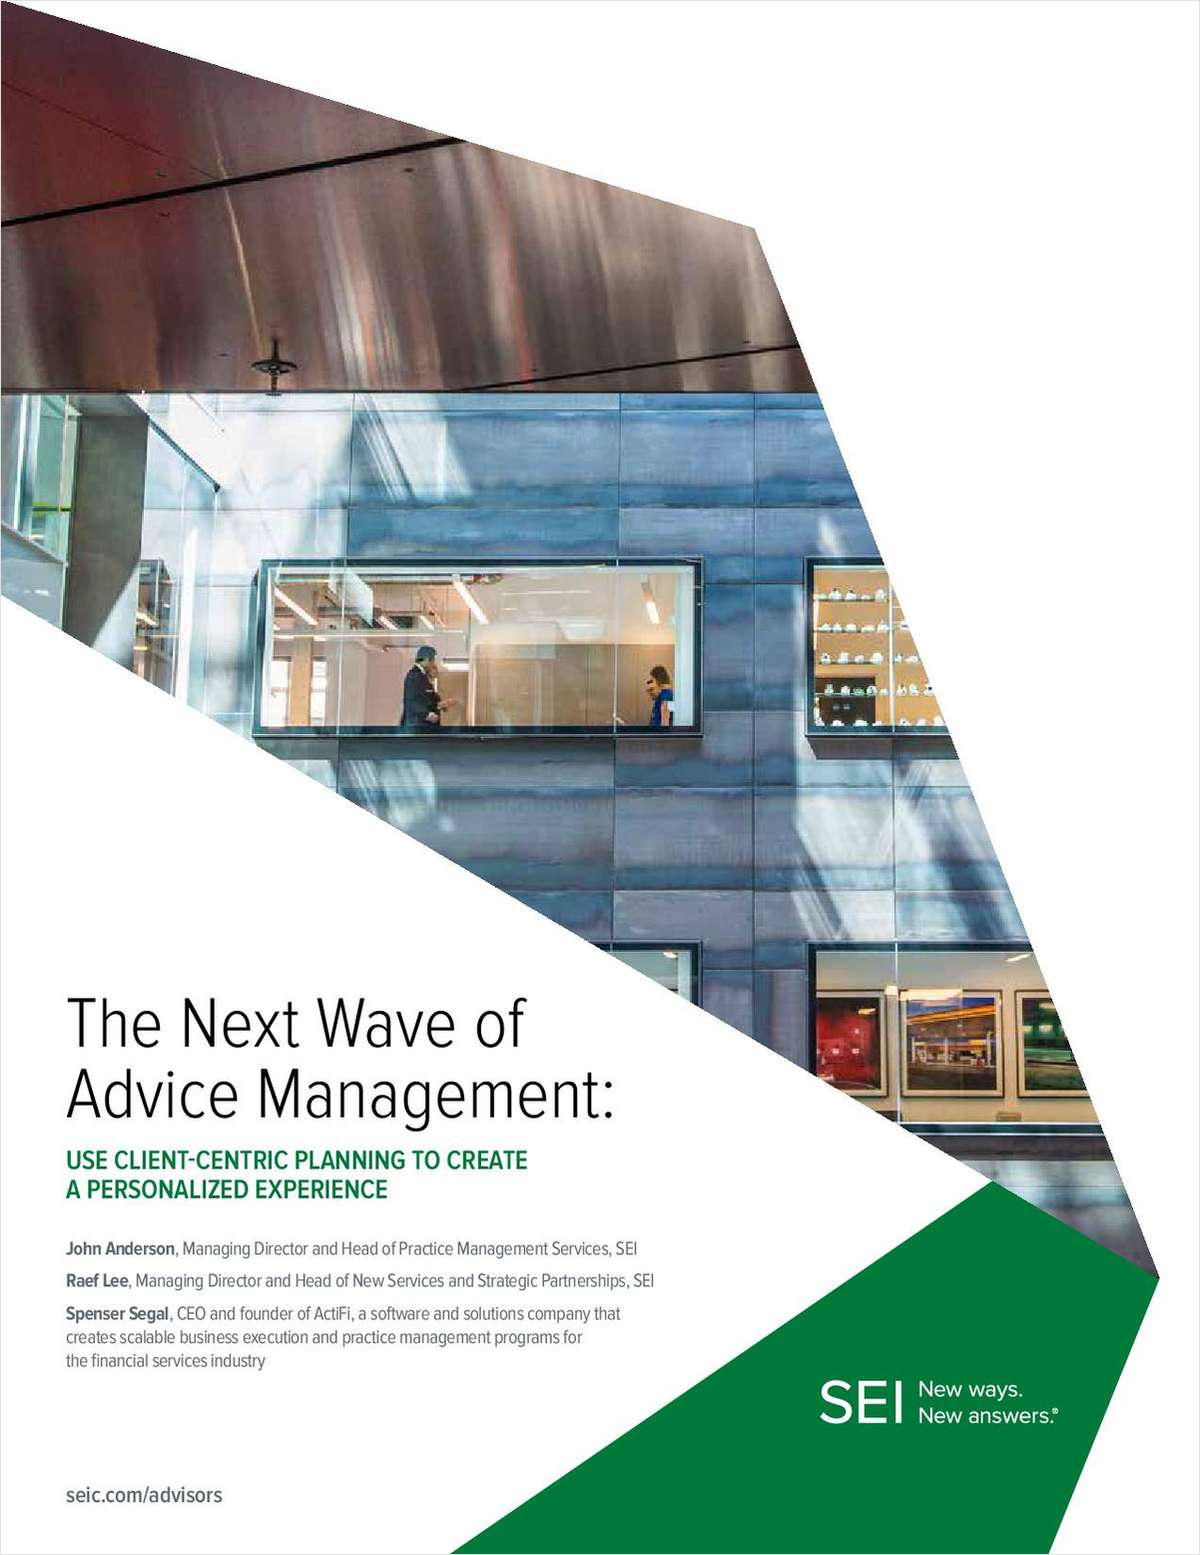 The Next Wave of Advice Management: Use Client-Centric Planning to Create a Personalized Experience